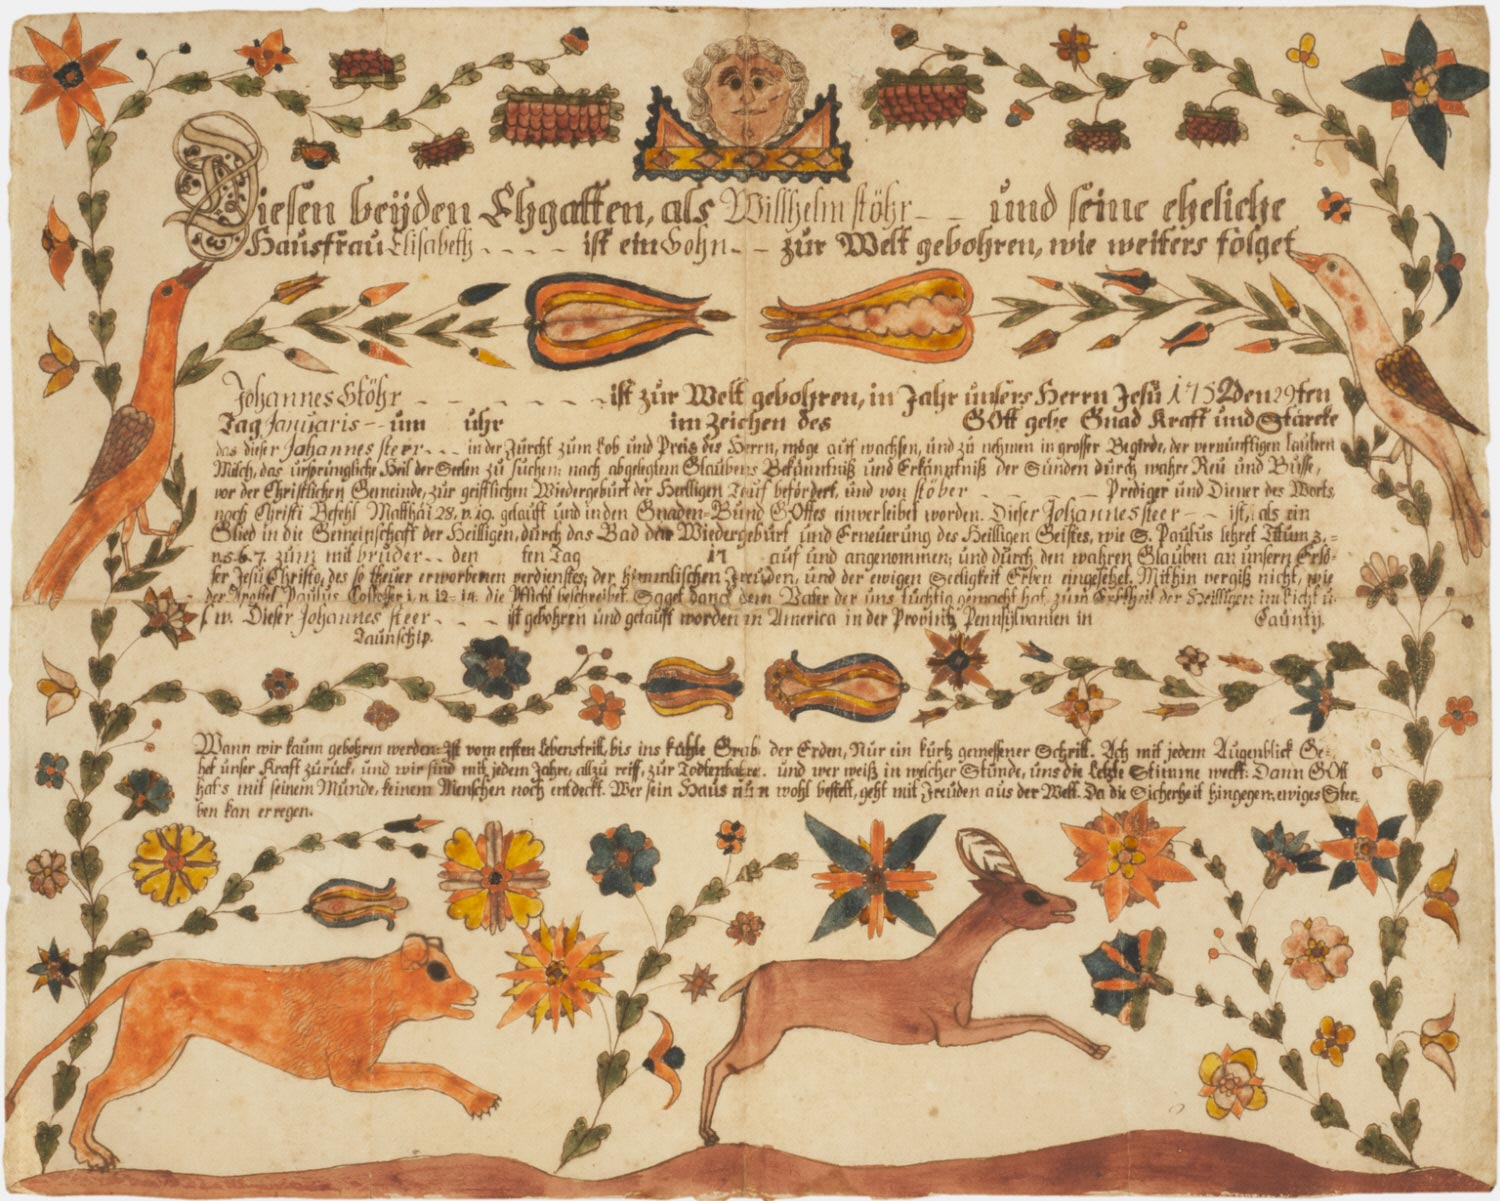 Birth and Baptismal Certificate for Johannes Stohr (born January 10, 1752)